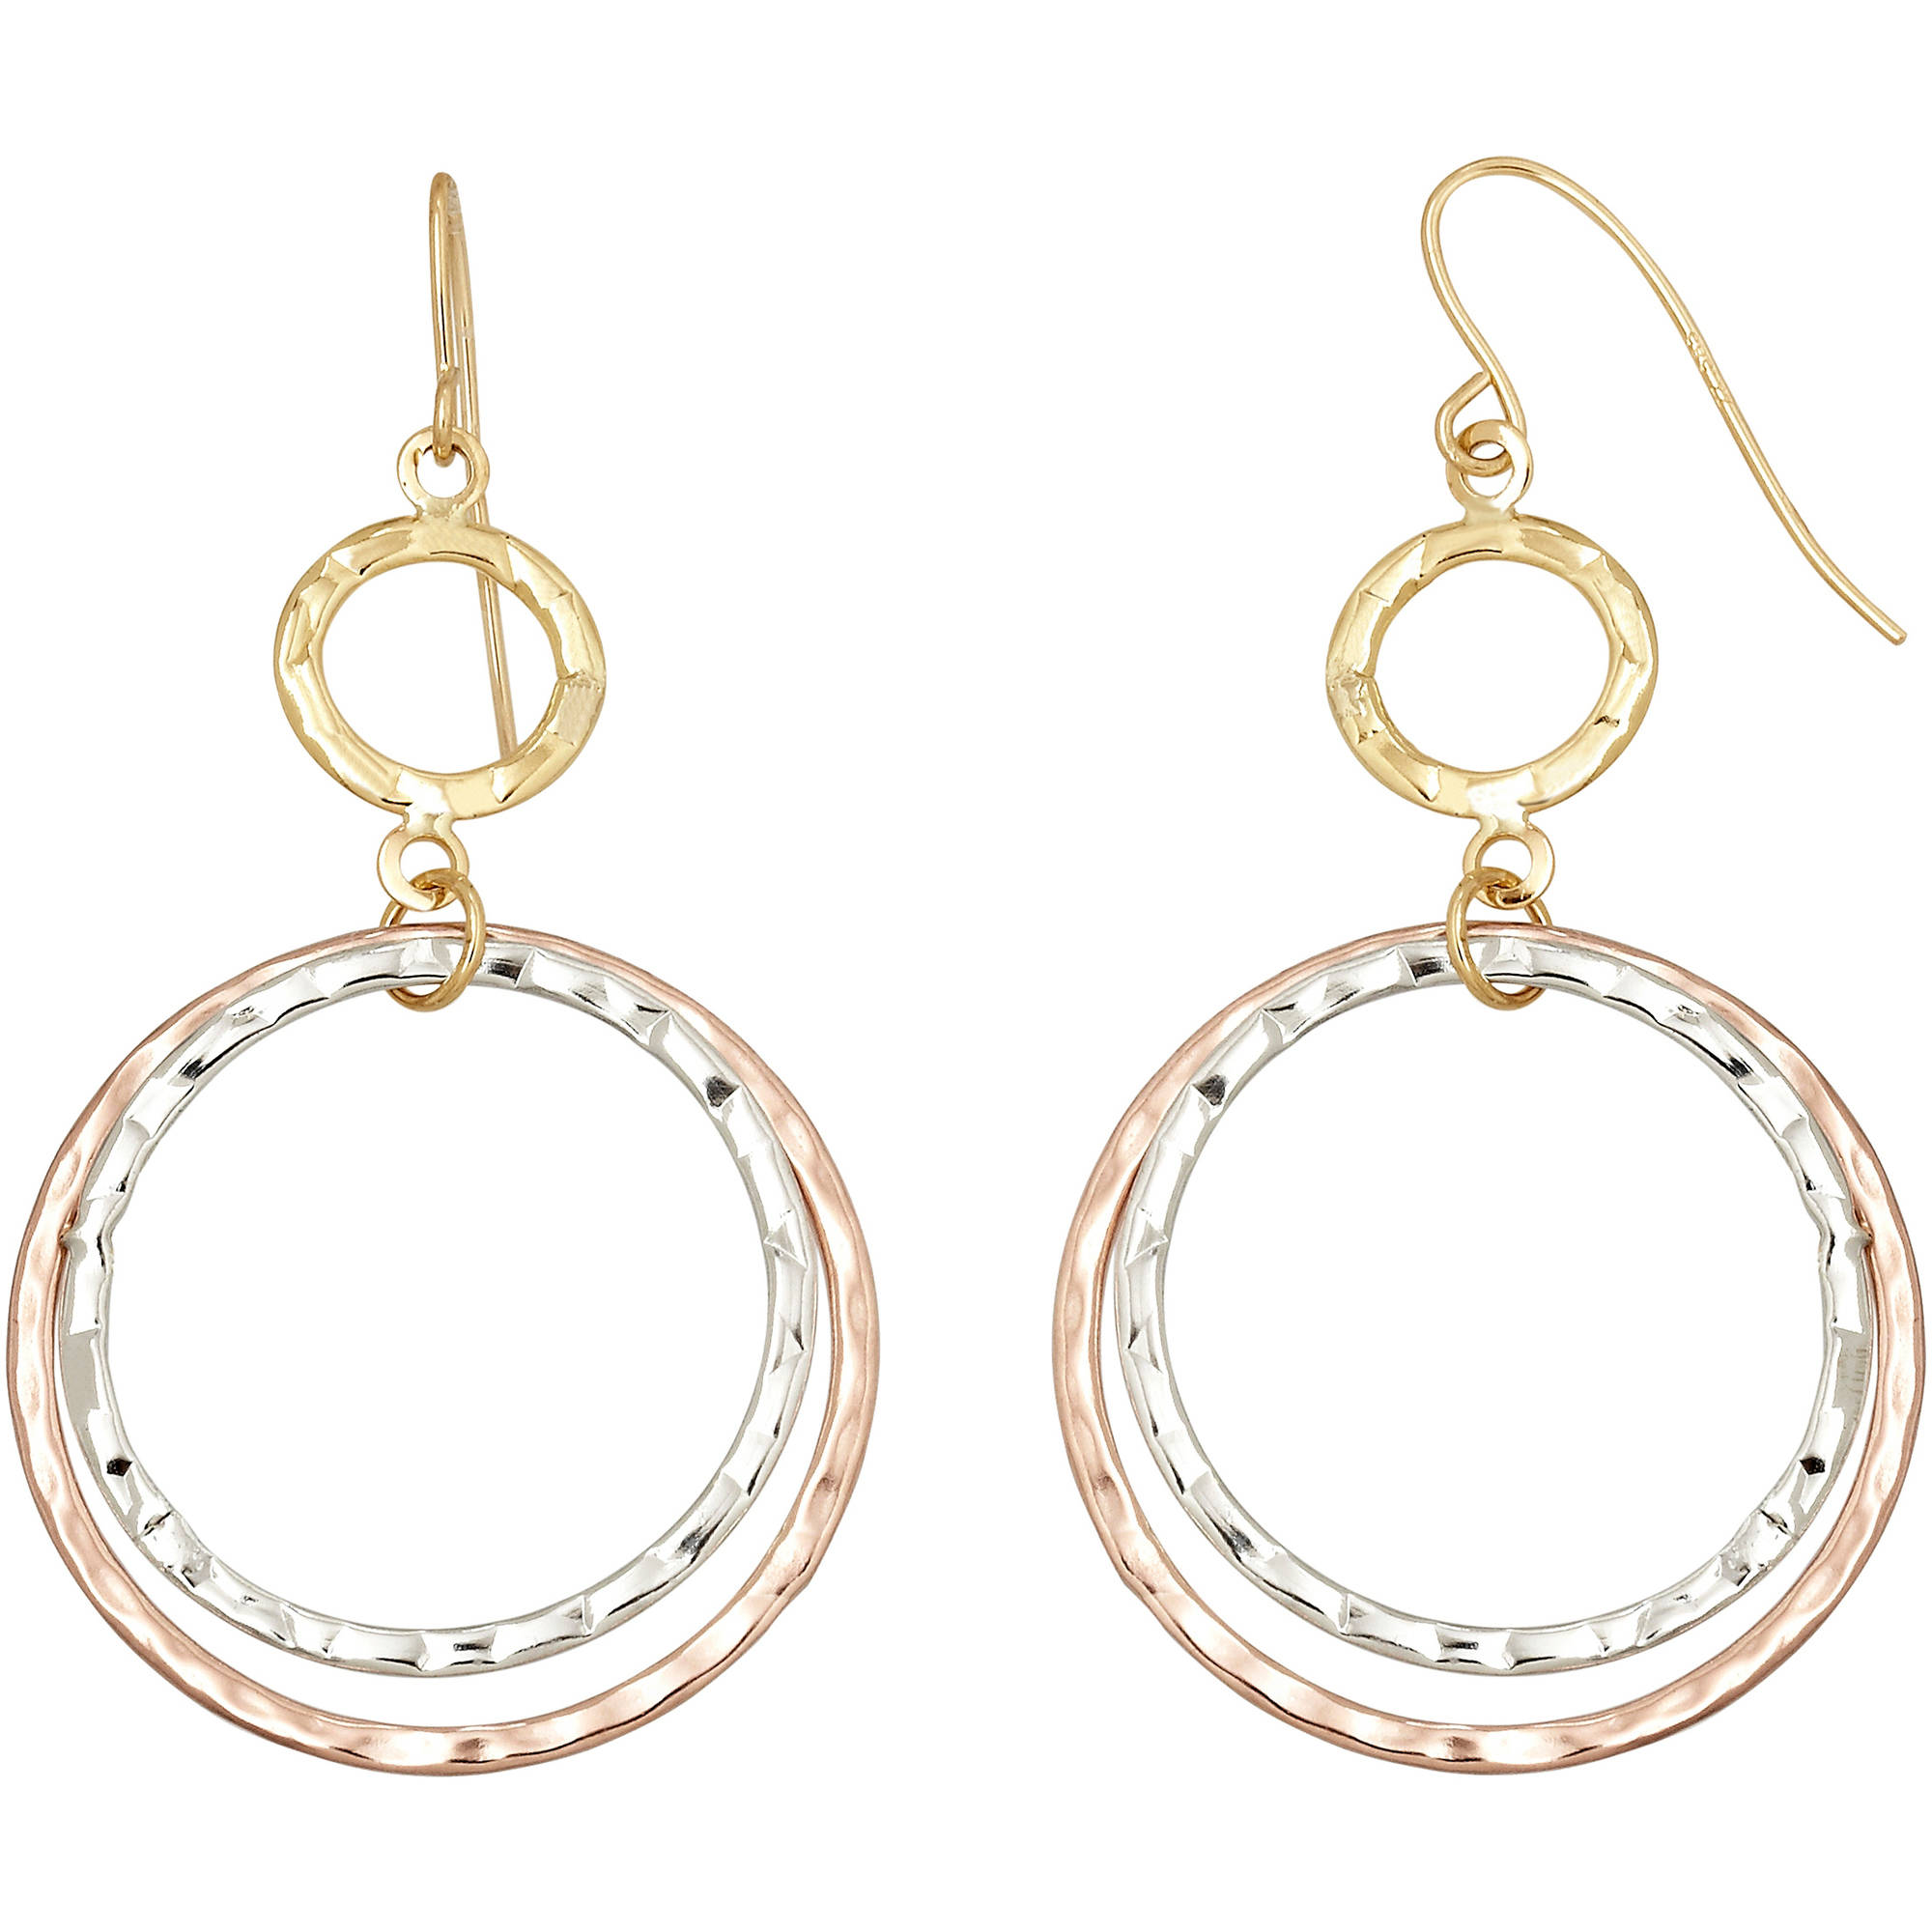 Simply Gold Triple Circle Drop Earrings in 10kt Yellow, Pink and White Gold